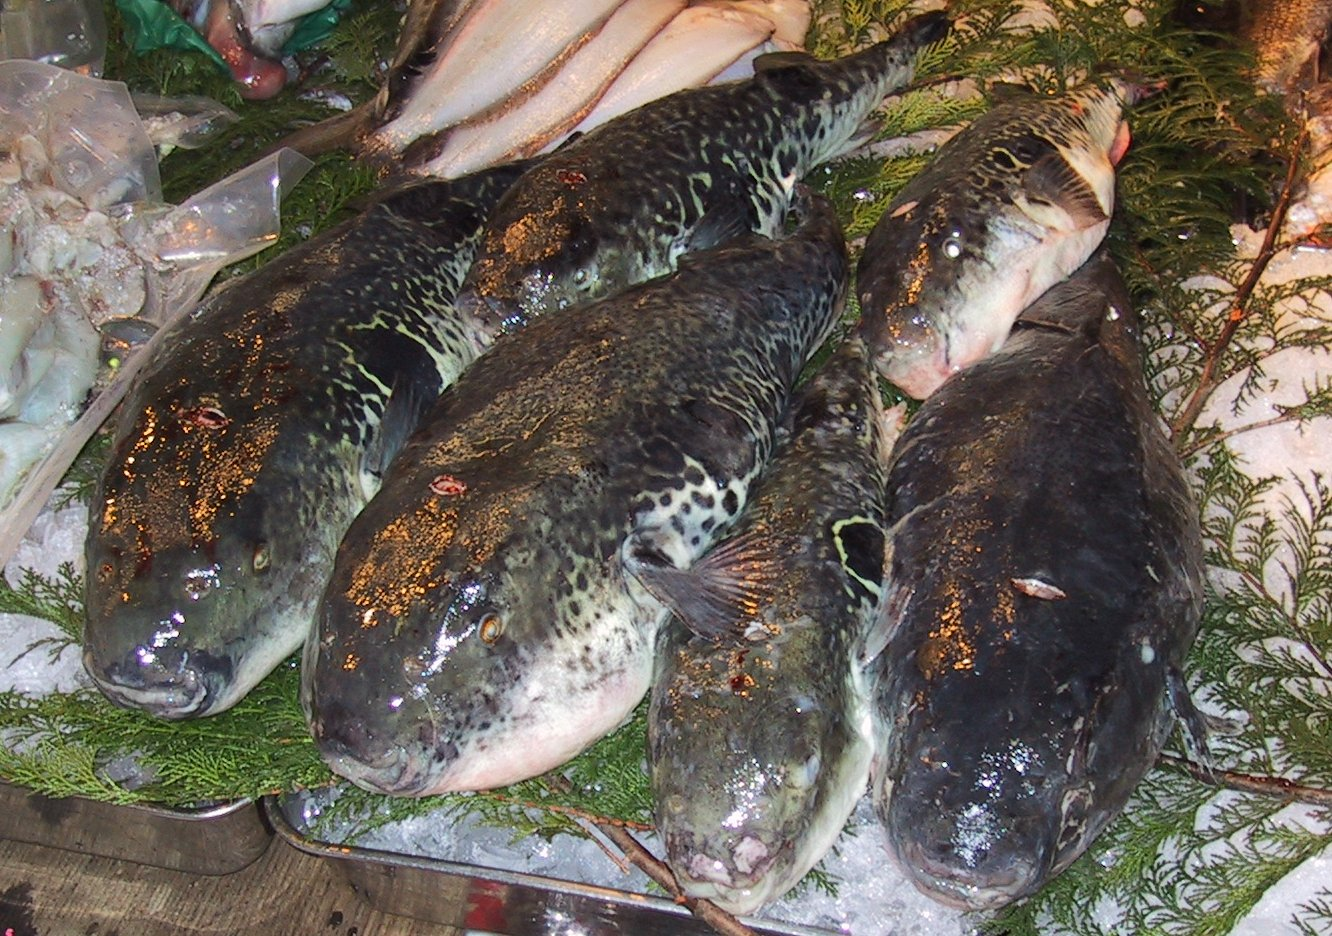 http://upload.wikimedia.org/wikipedia/commons/1/1d/Fugu.Tsukiji.CR.jpg